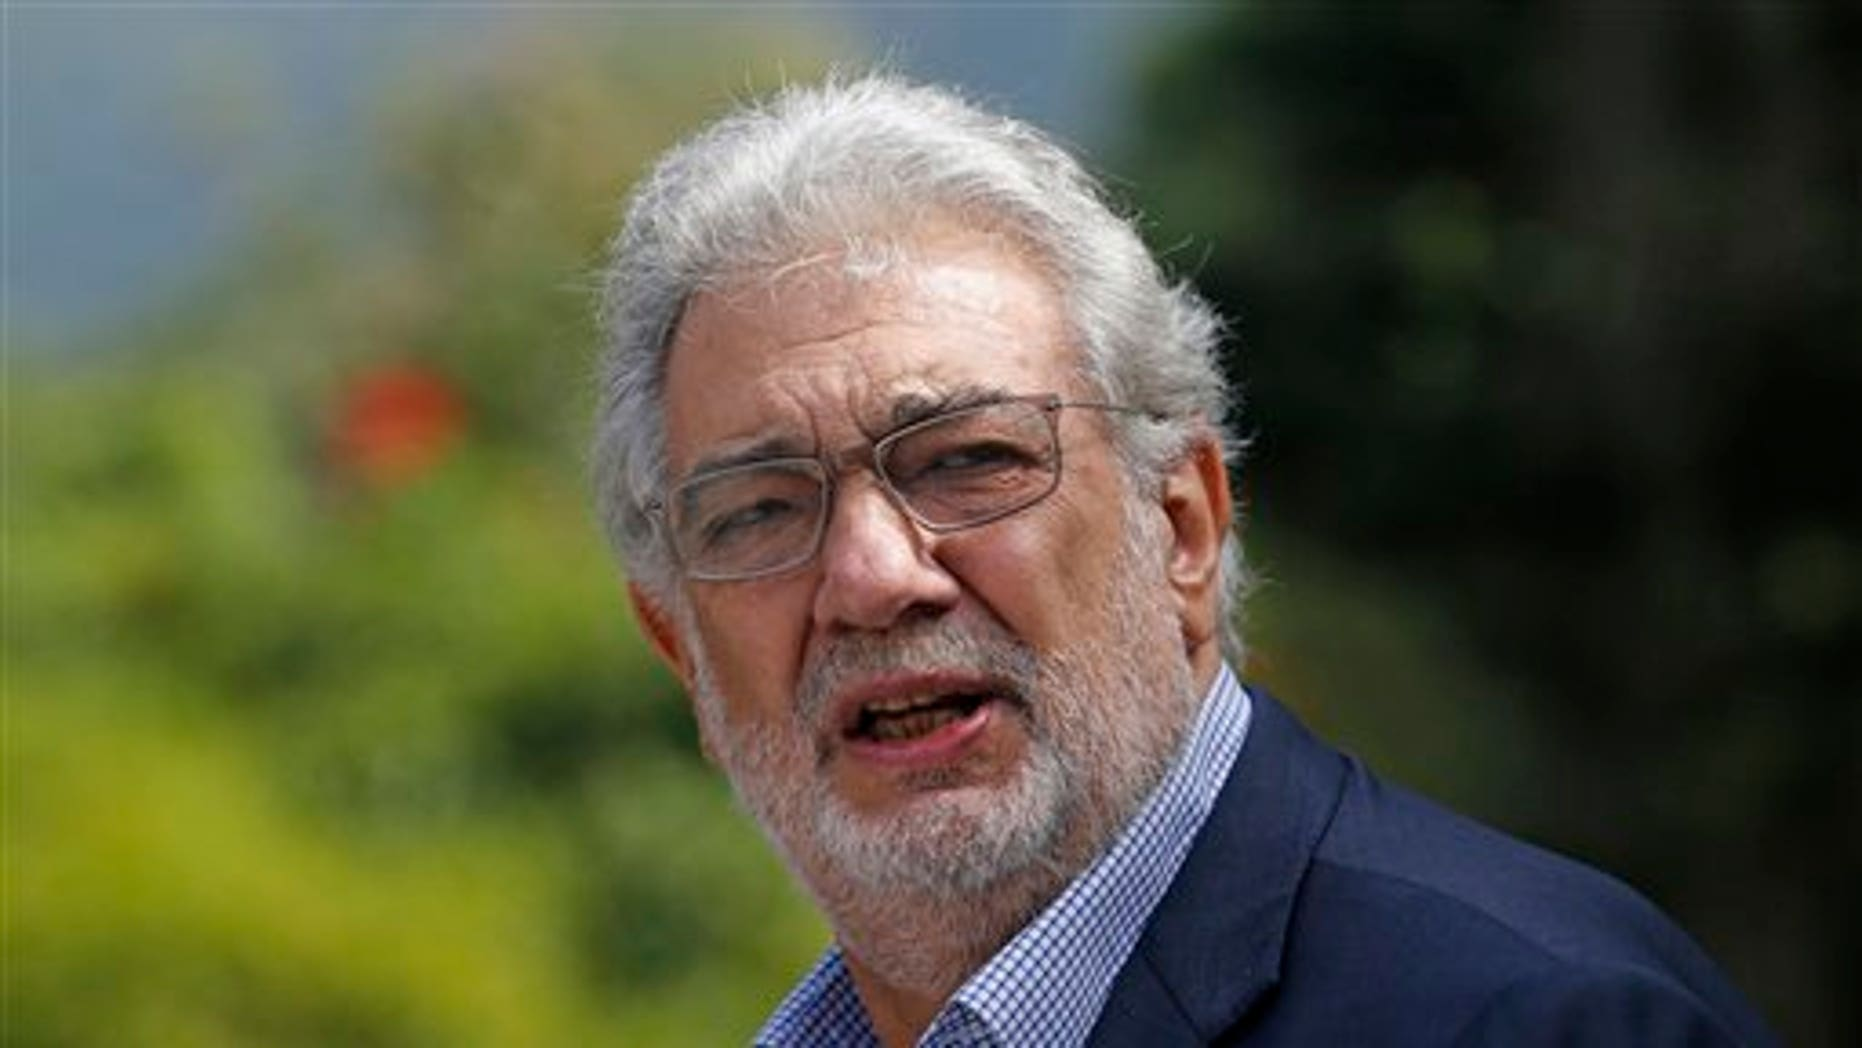 Tenor Placido Domingo gestures after a press conference in Rio de Janeiro, Brazil, Thursday, July 3, 2014. For Placido Domingo, opera and soccer go hand in hand. The Spanish tenor has performed during almost every World Cup since 1990 and plans a July 11 concert in Rio de Janeiro, just two days before the city hosts the final game. (AP Photo/Silvia Izquierdo)